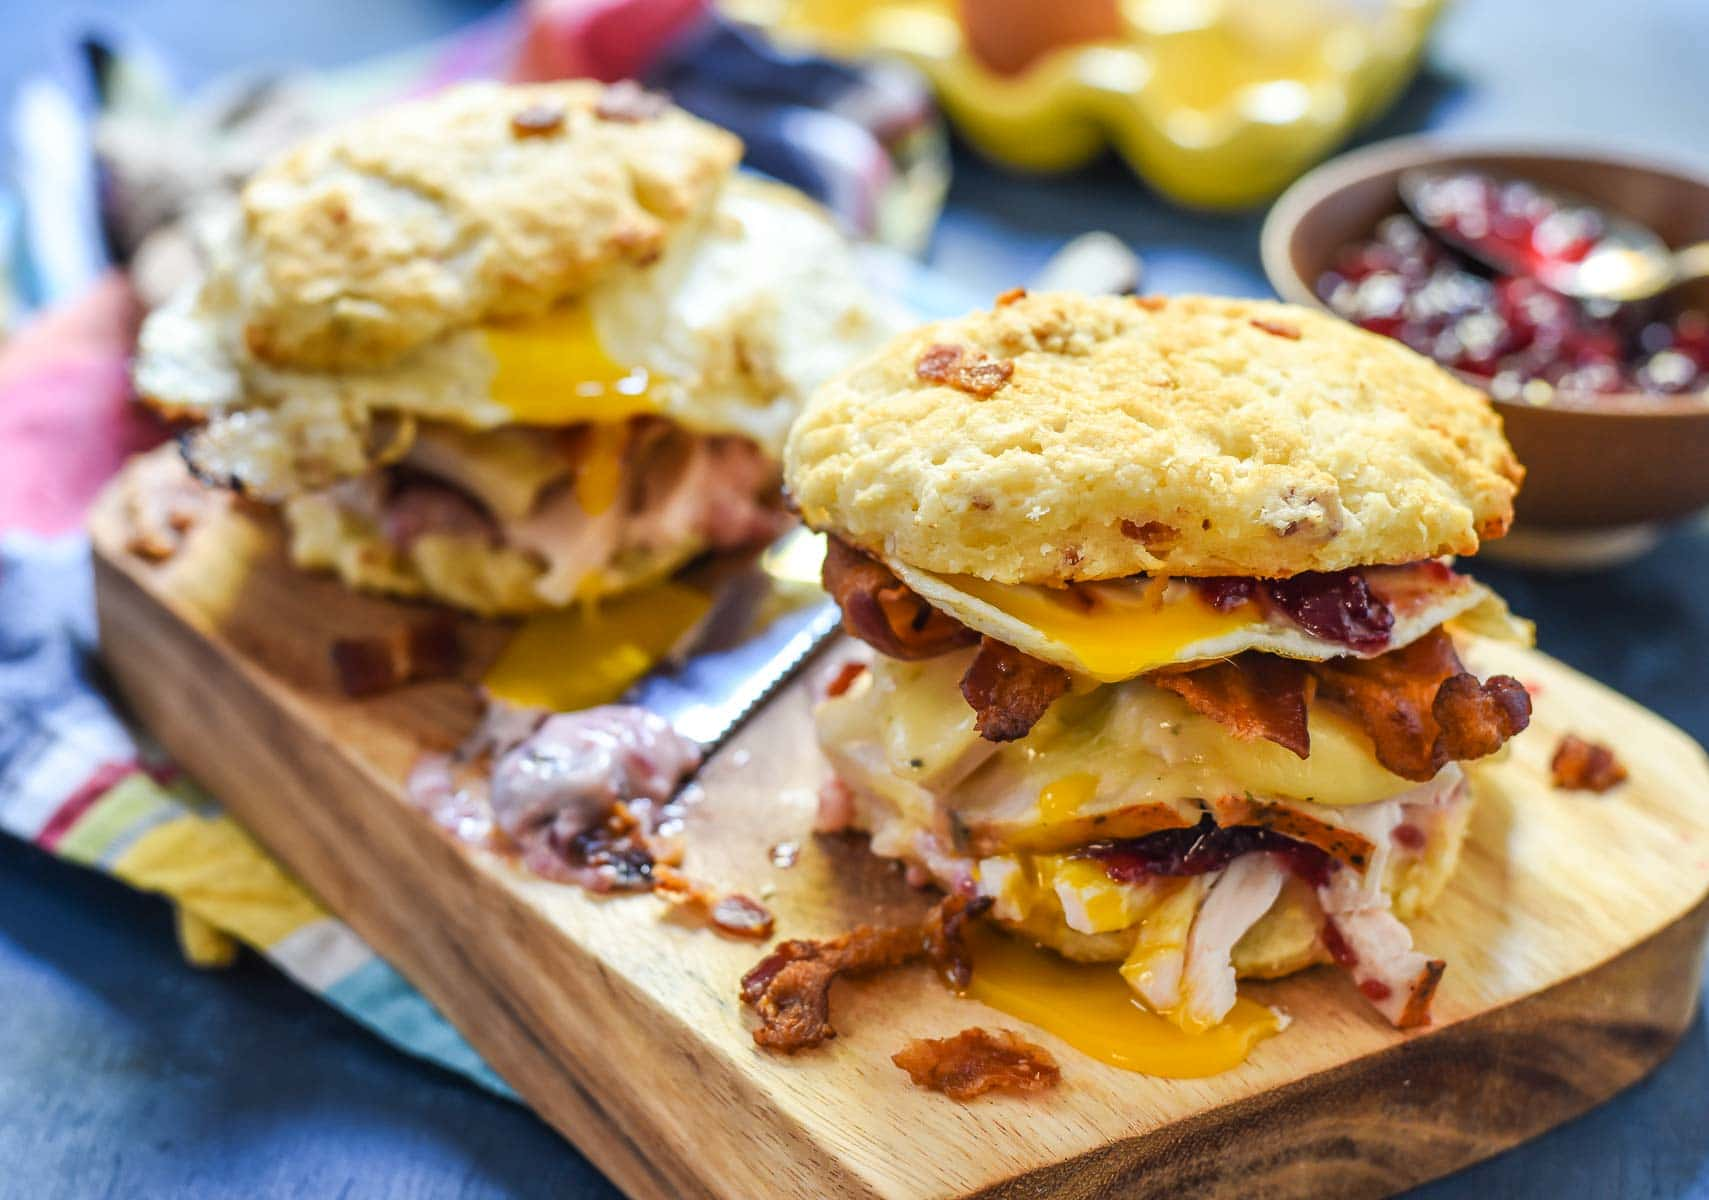 Turkey Egg and Bacon Breakfast Sandwich